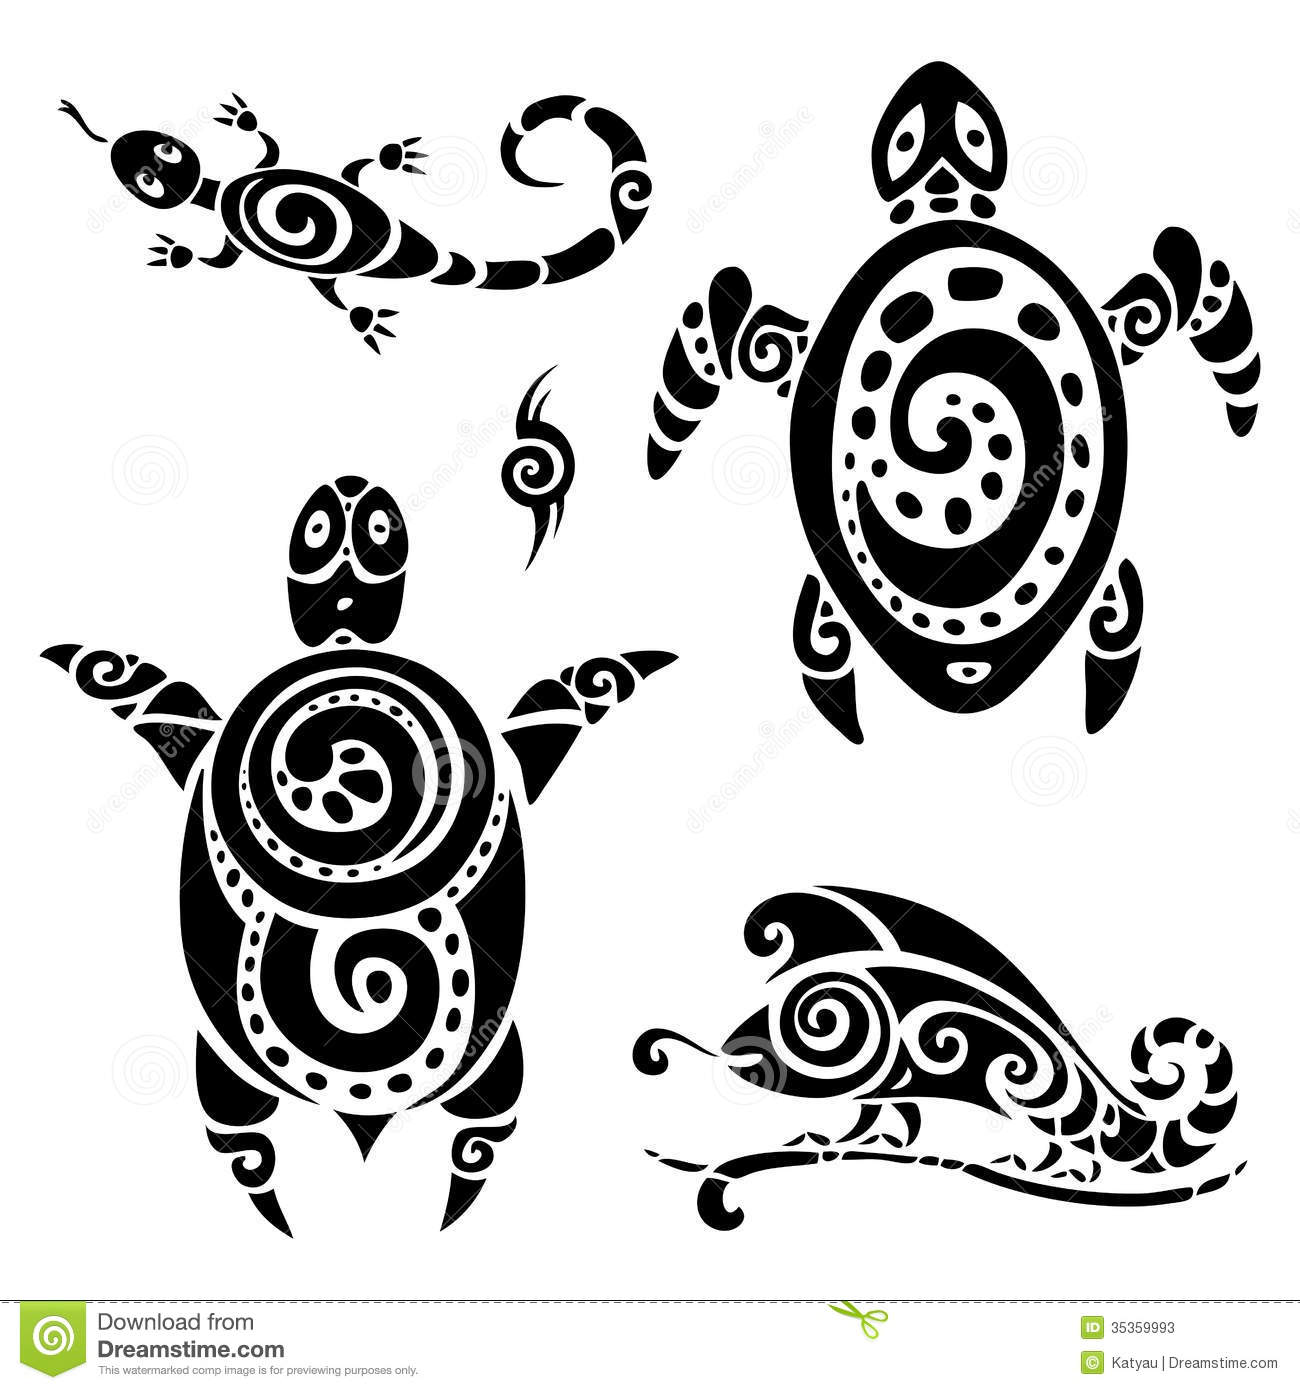 HD wallpapers extreme vector design